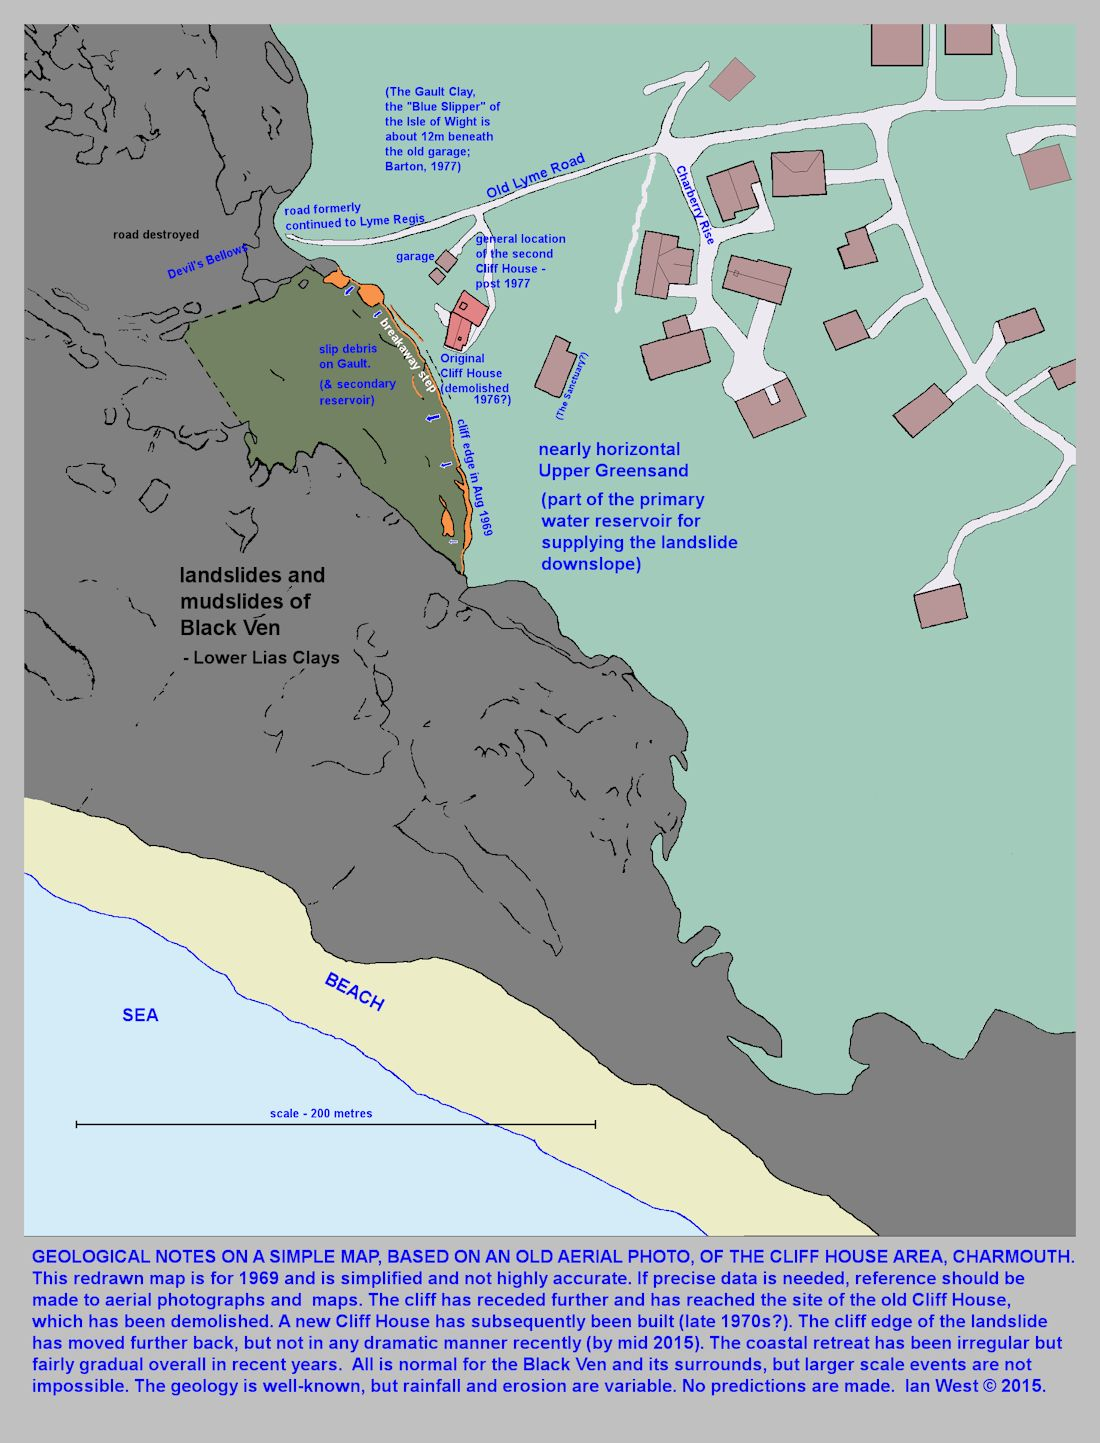 A simplified map, based on an aerial photograph of 1969, of the Cliff House area, adjacent to Black Ven, Charmouth, Dorset, with some explanatory notes